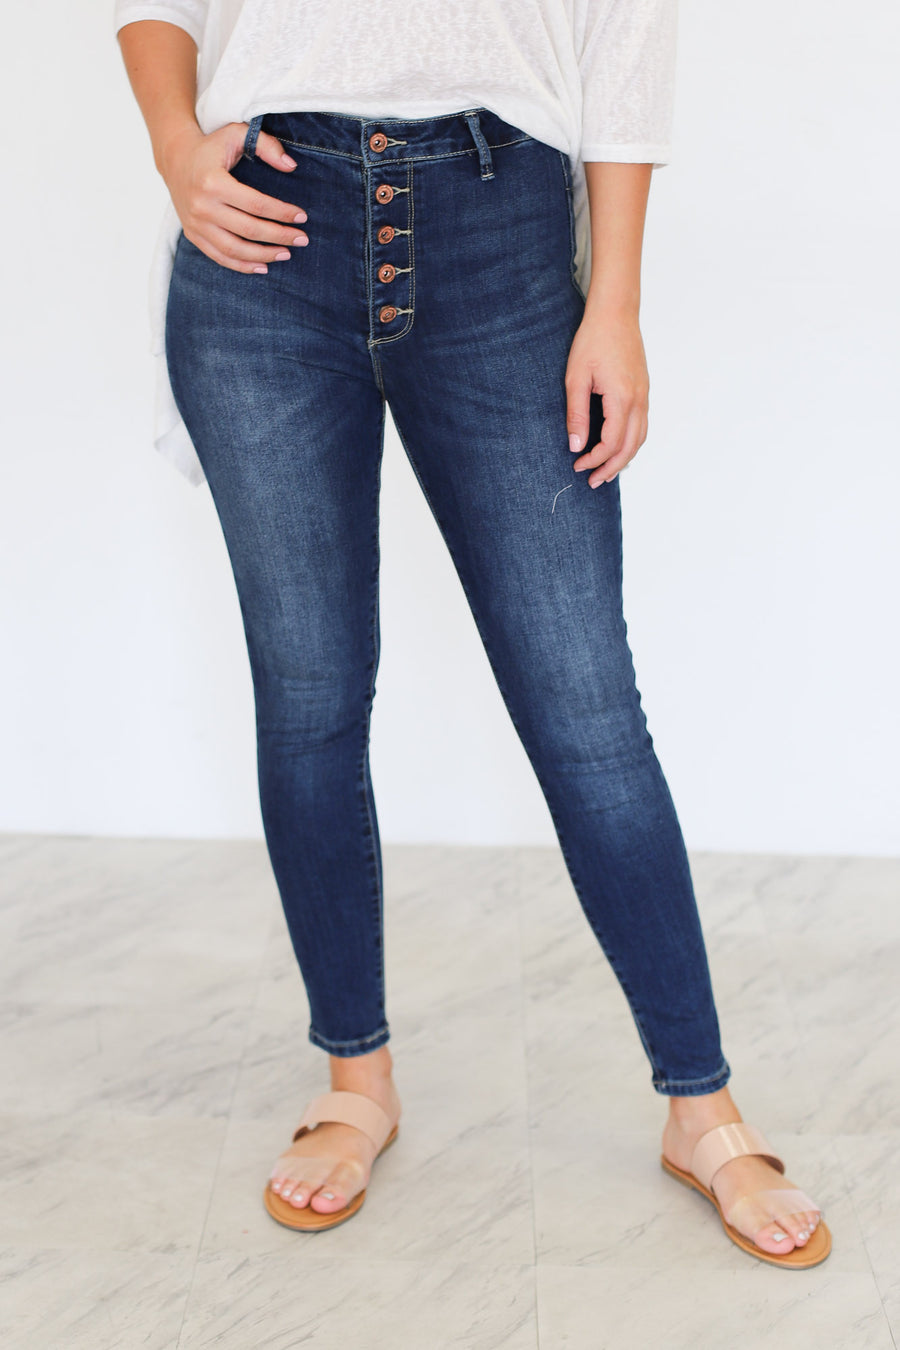 Sade Jeans - ShopSpoiled